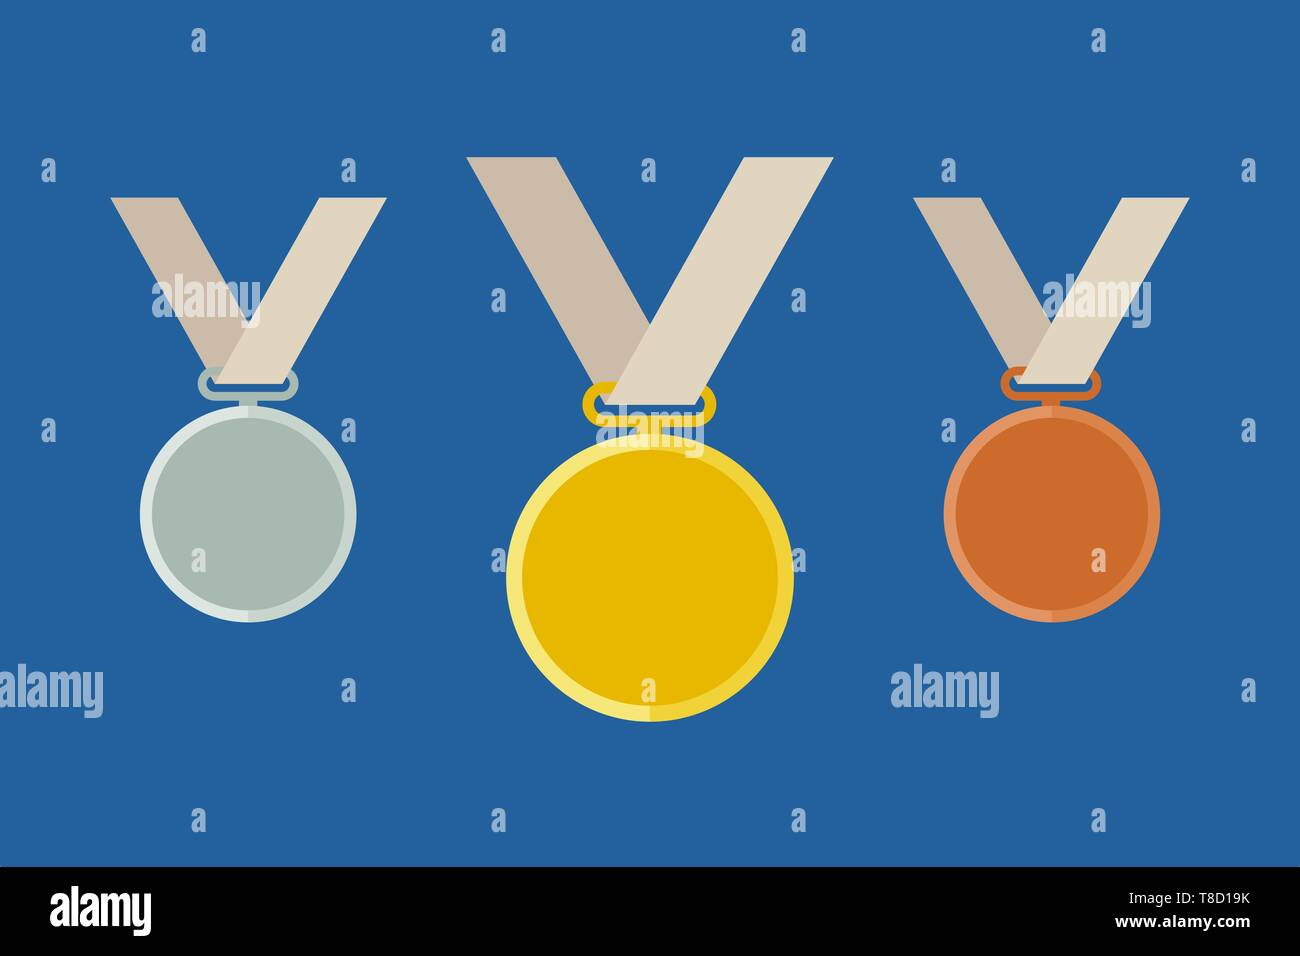 Olympic medal templates - Stock Vector